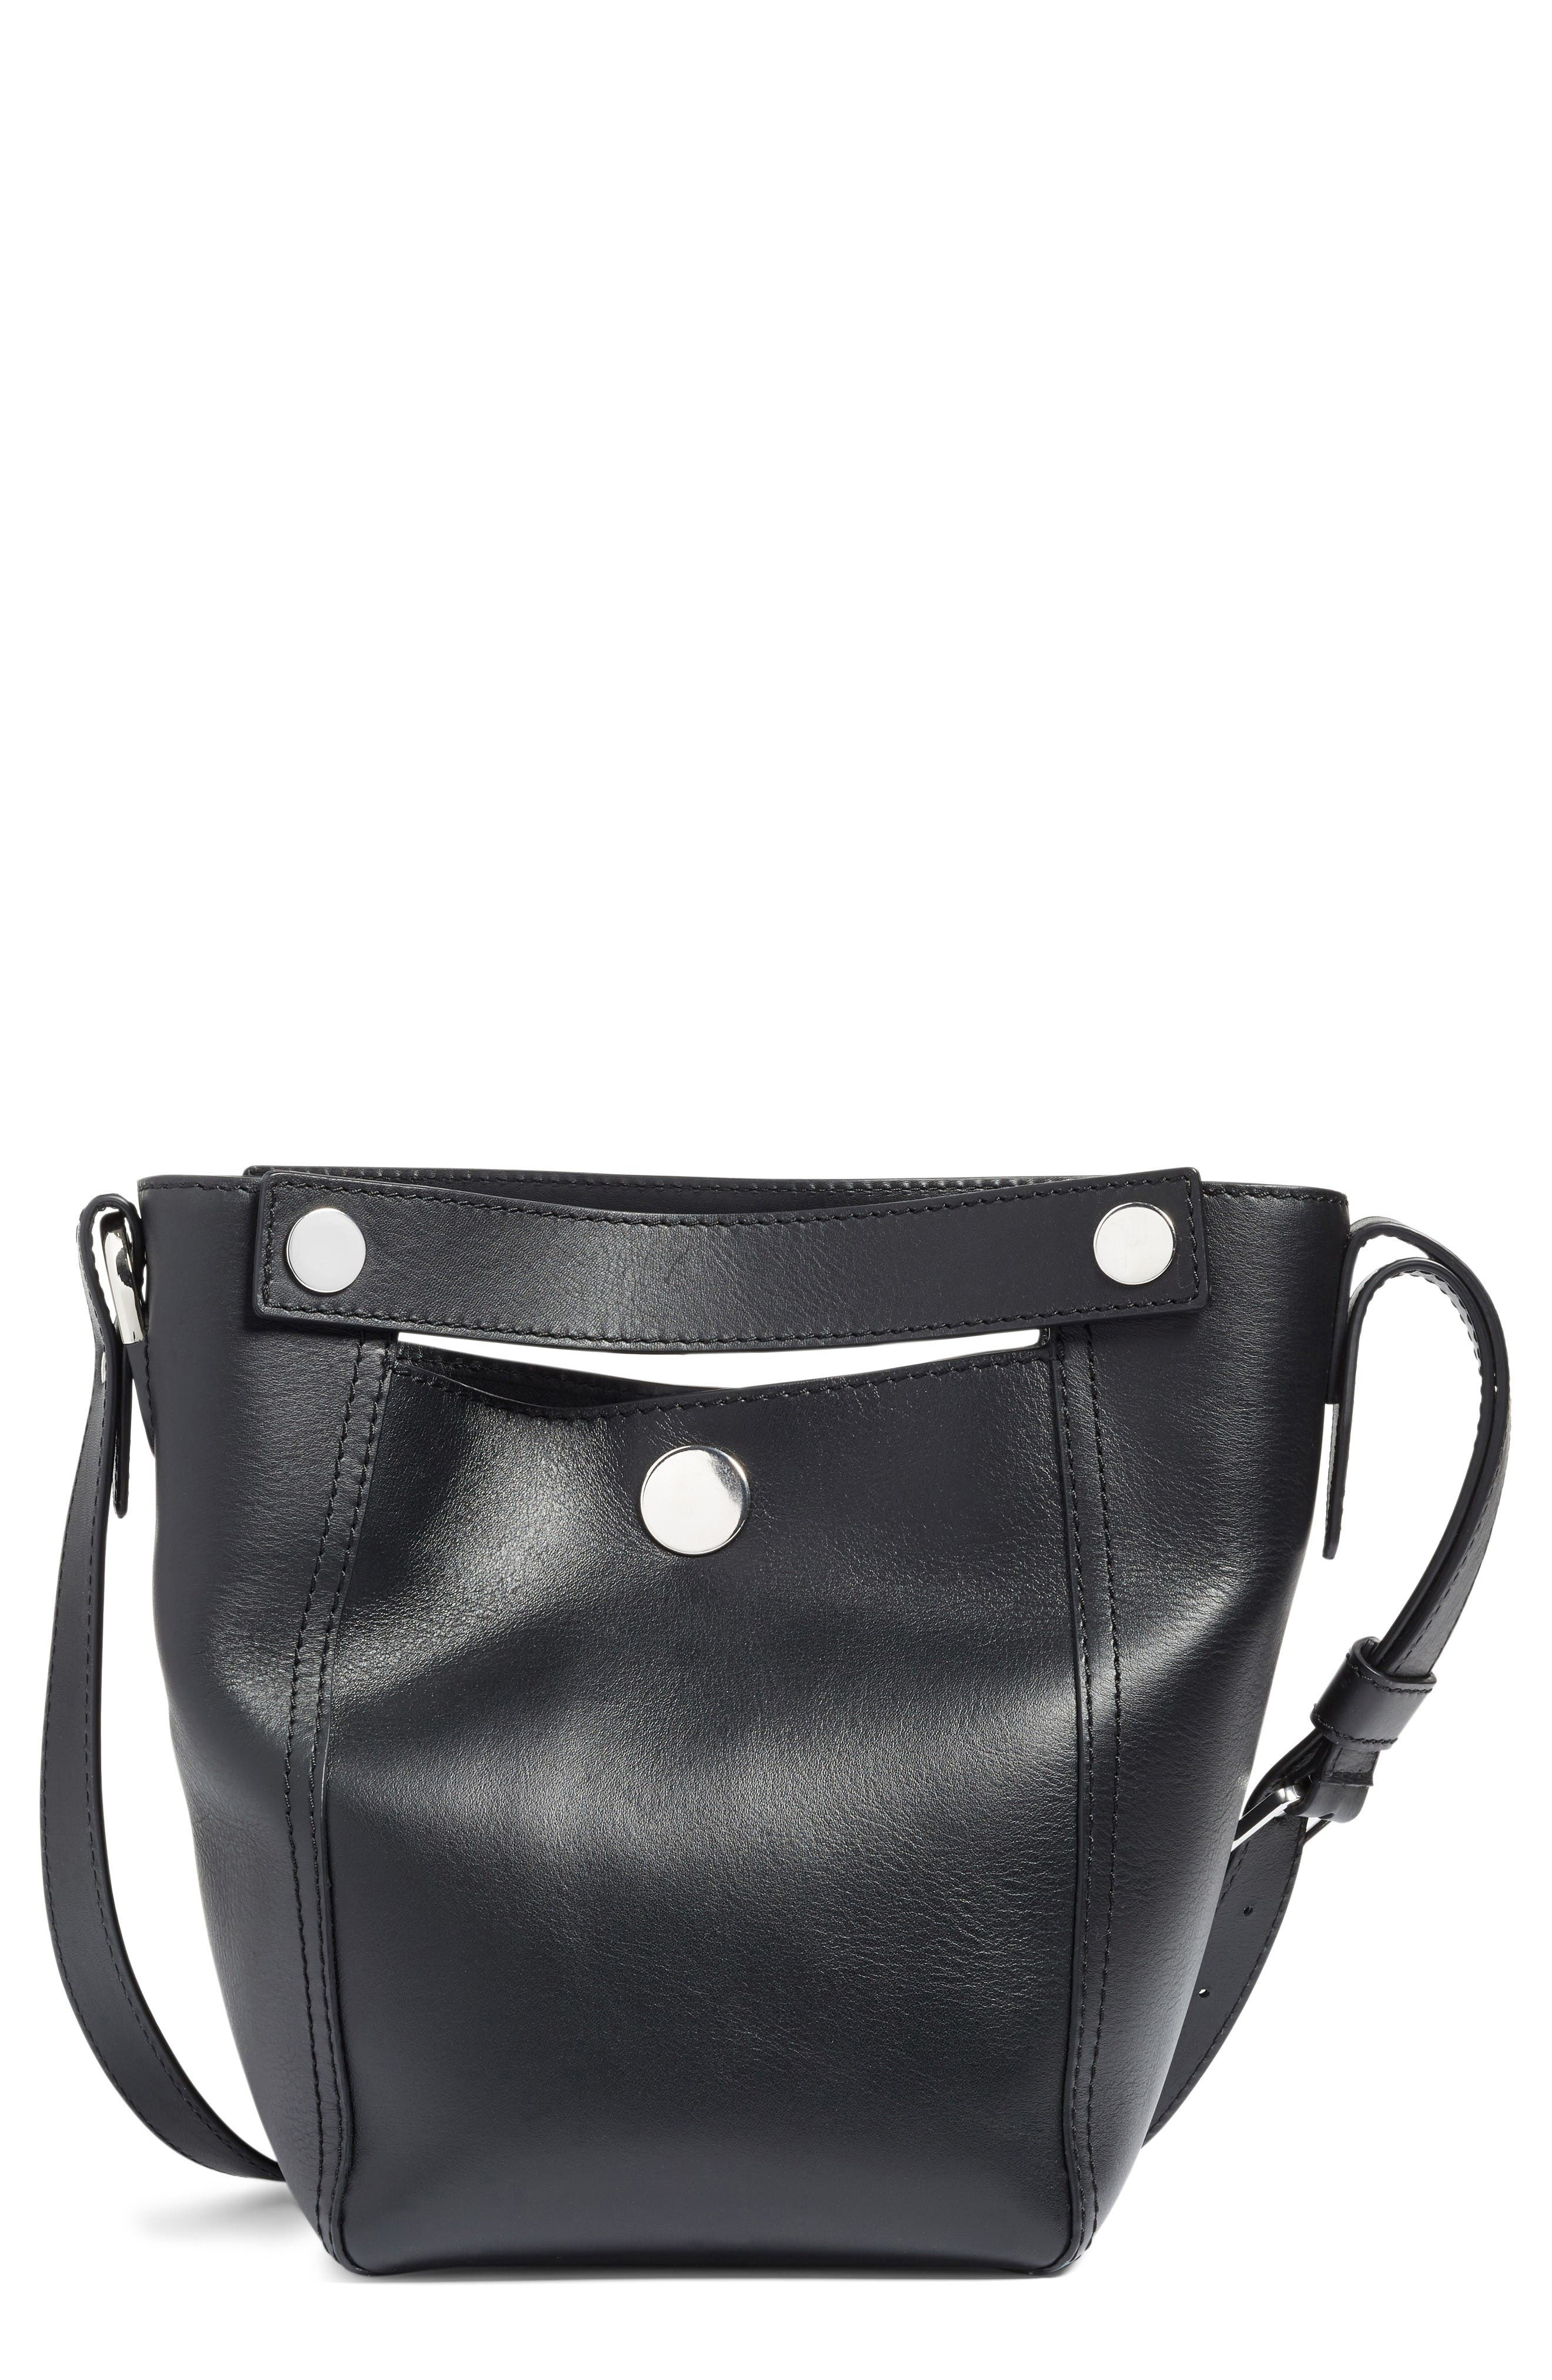 3.1 Phillip Lim Small Dolly Leather Tote